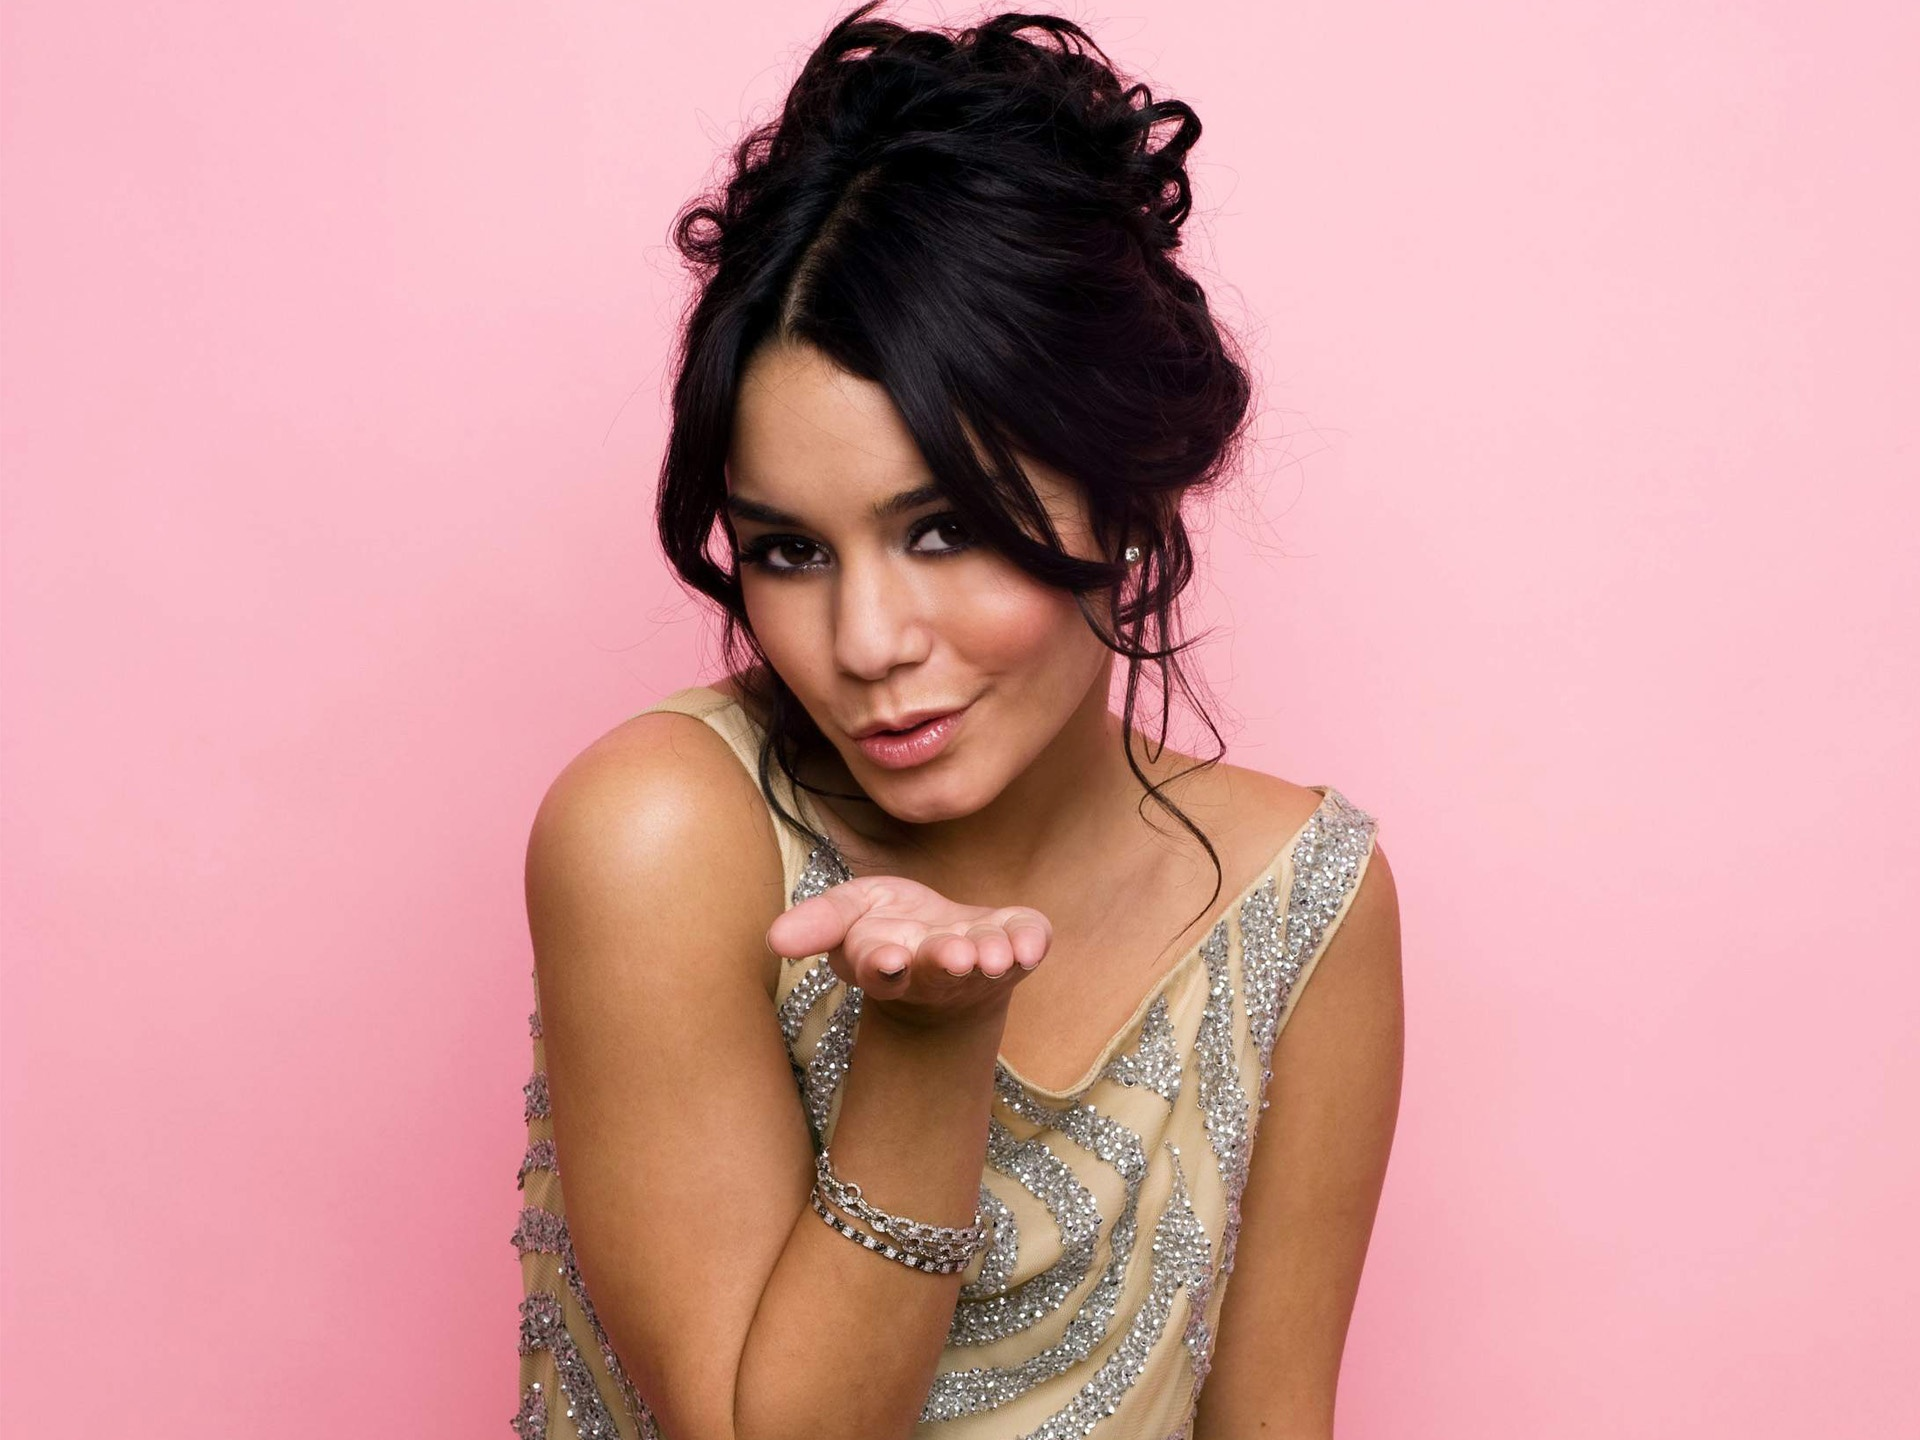 vanessa anne hudgens wallpapers hd A13